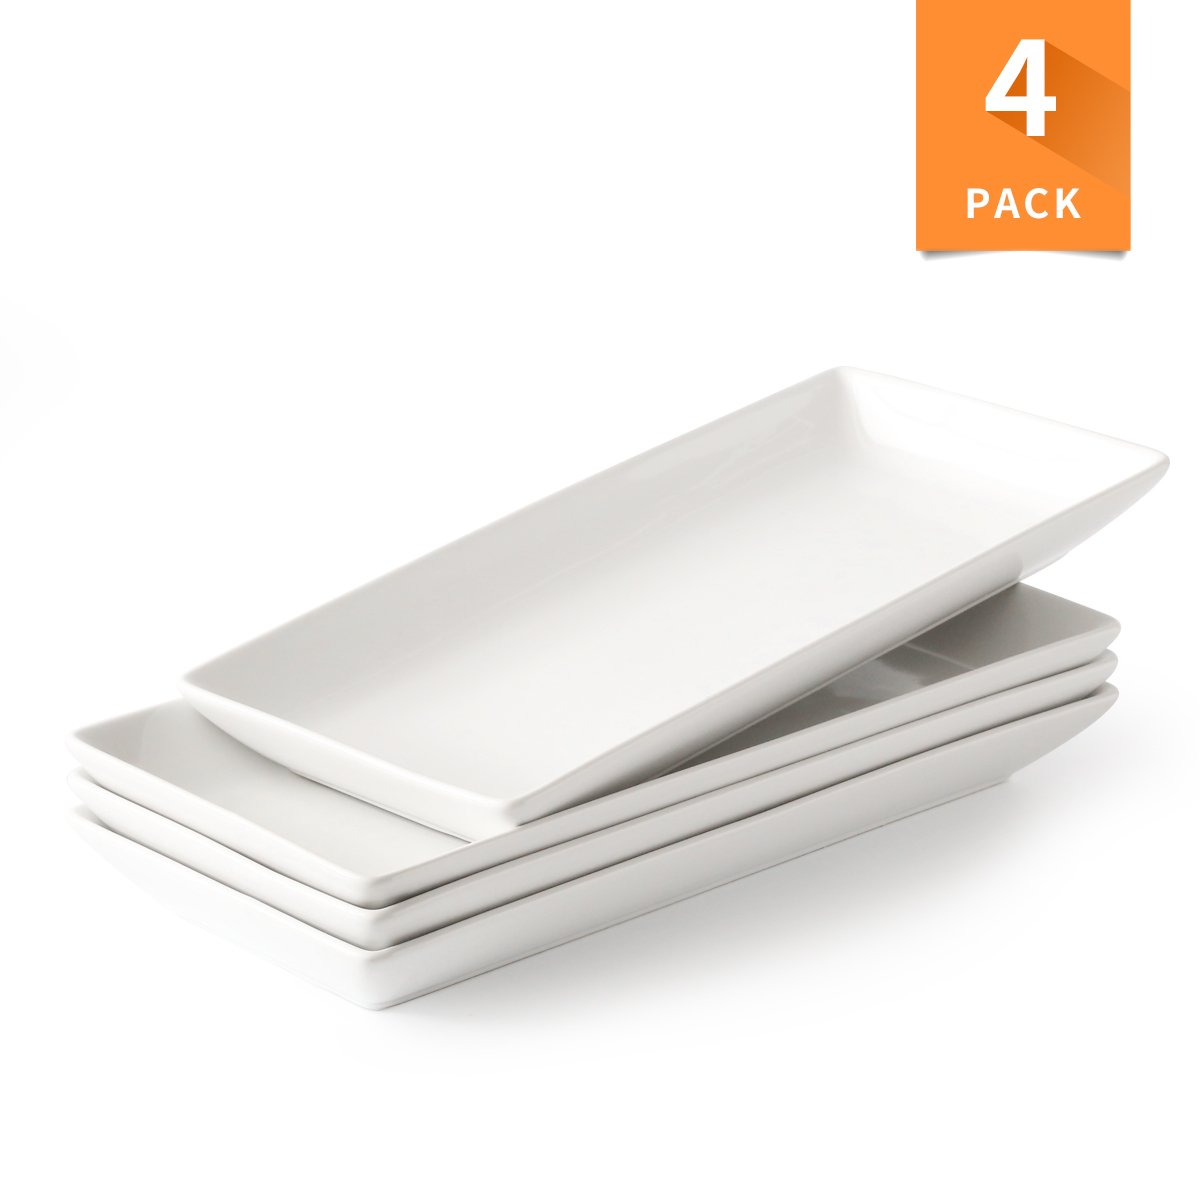 Porcelain Serving Platter Rectangular Plate/Tray for Party, 14-Inch Large White Microwave And Dishwasher Safe Set of 4